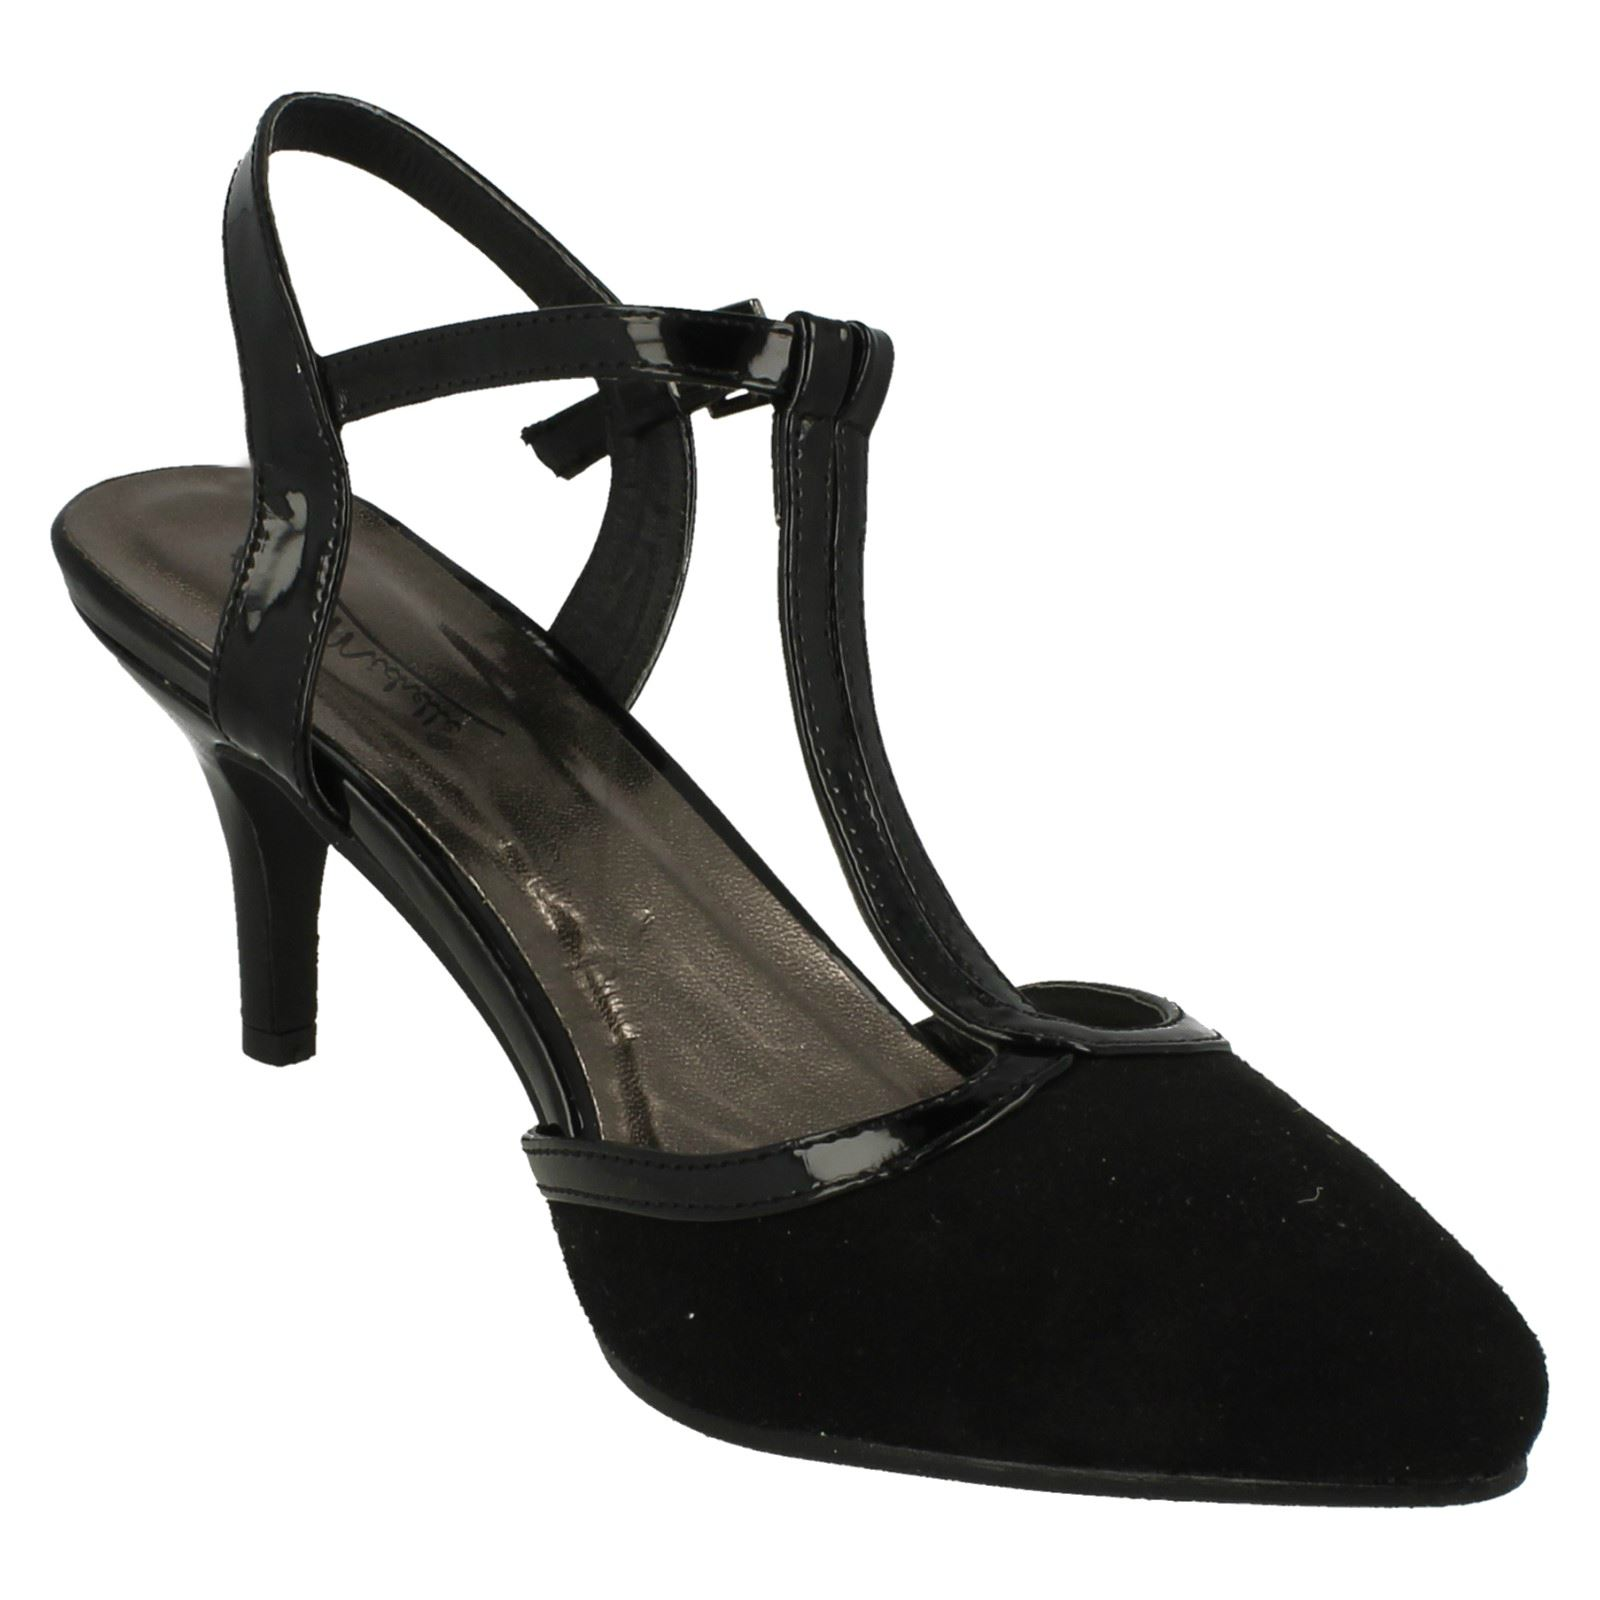 Anne-Michelle-Ladies-Mid-Heel-T-Bar-Court-Shoe thumbnail 8